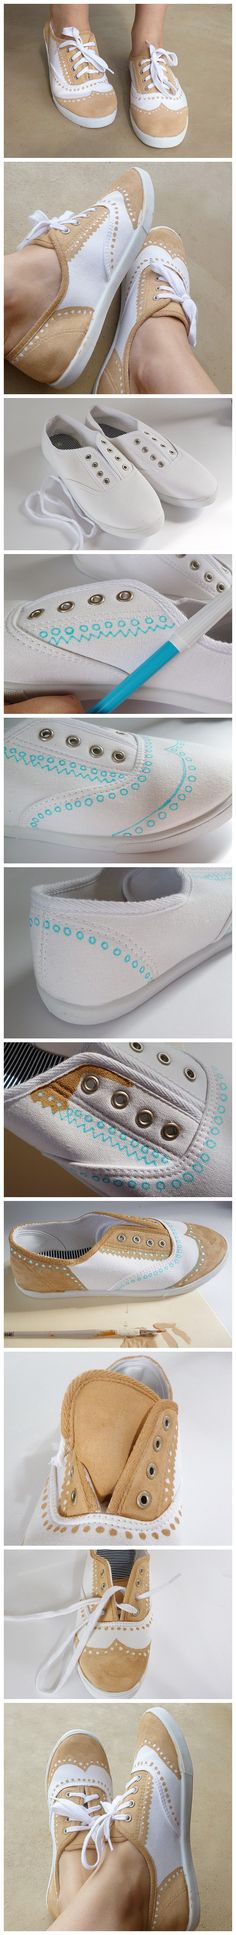 DIY Sneaker Oxfords